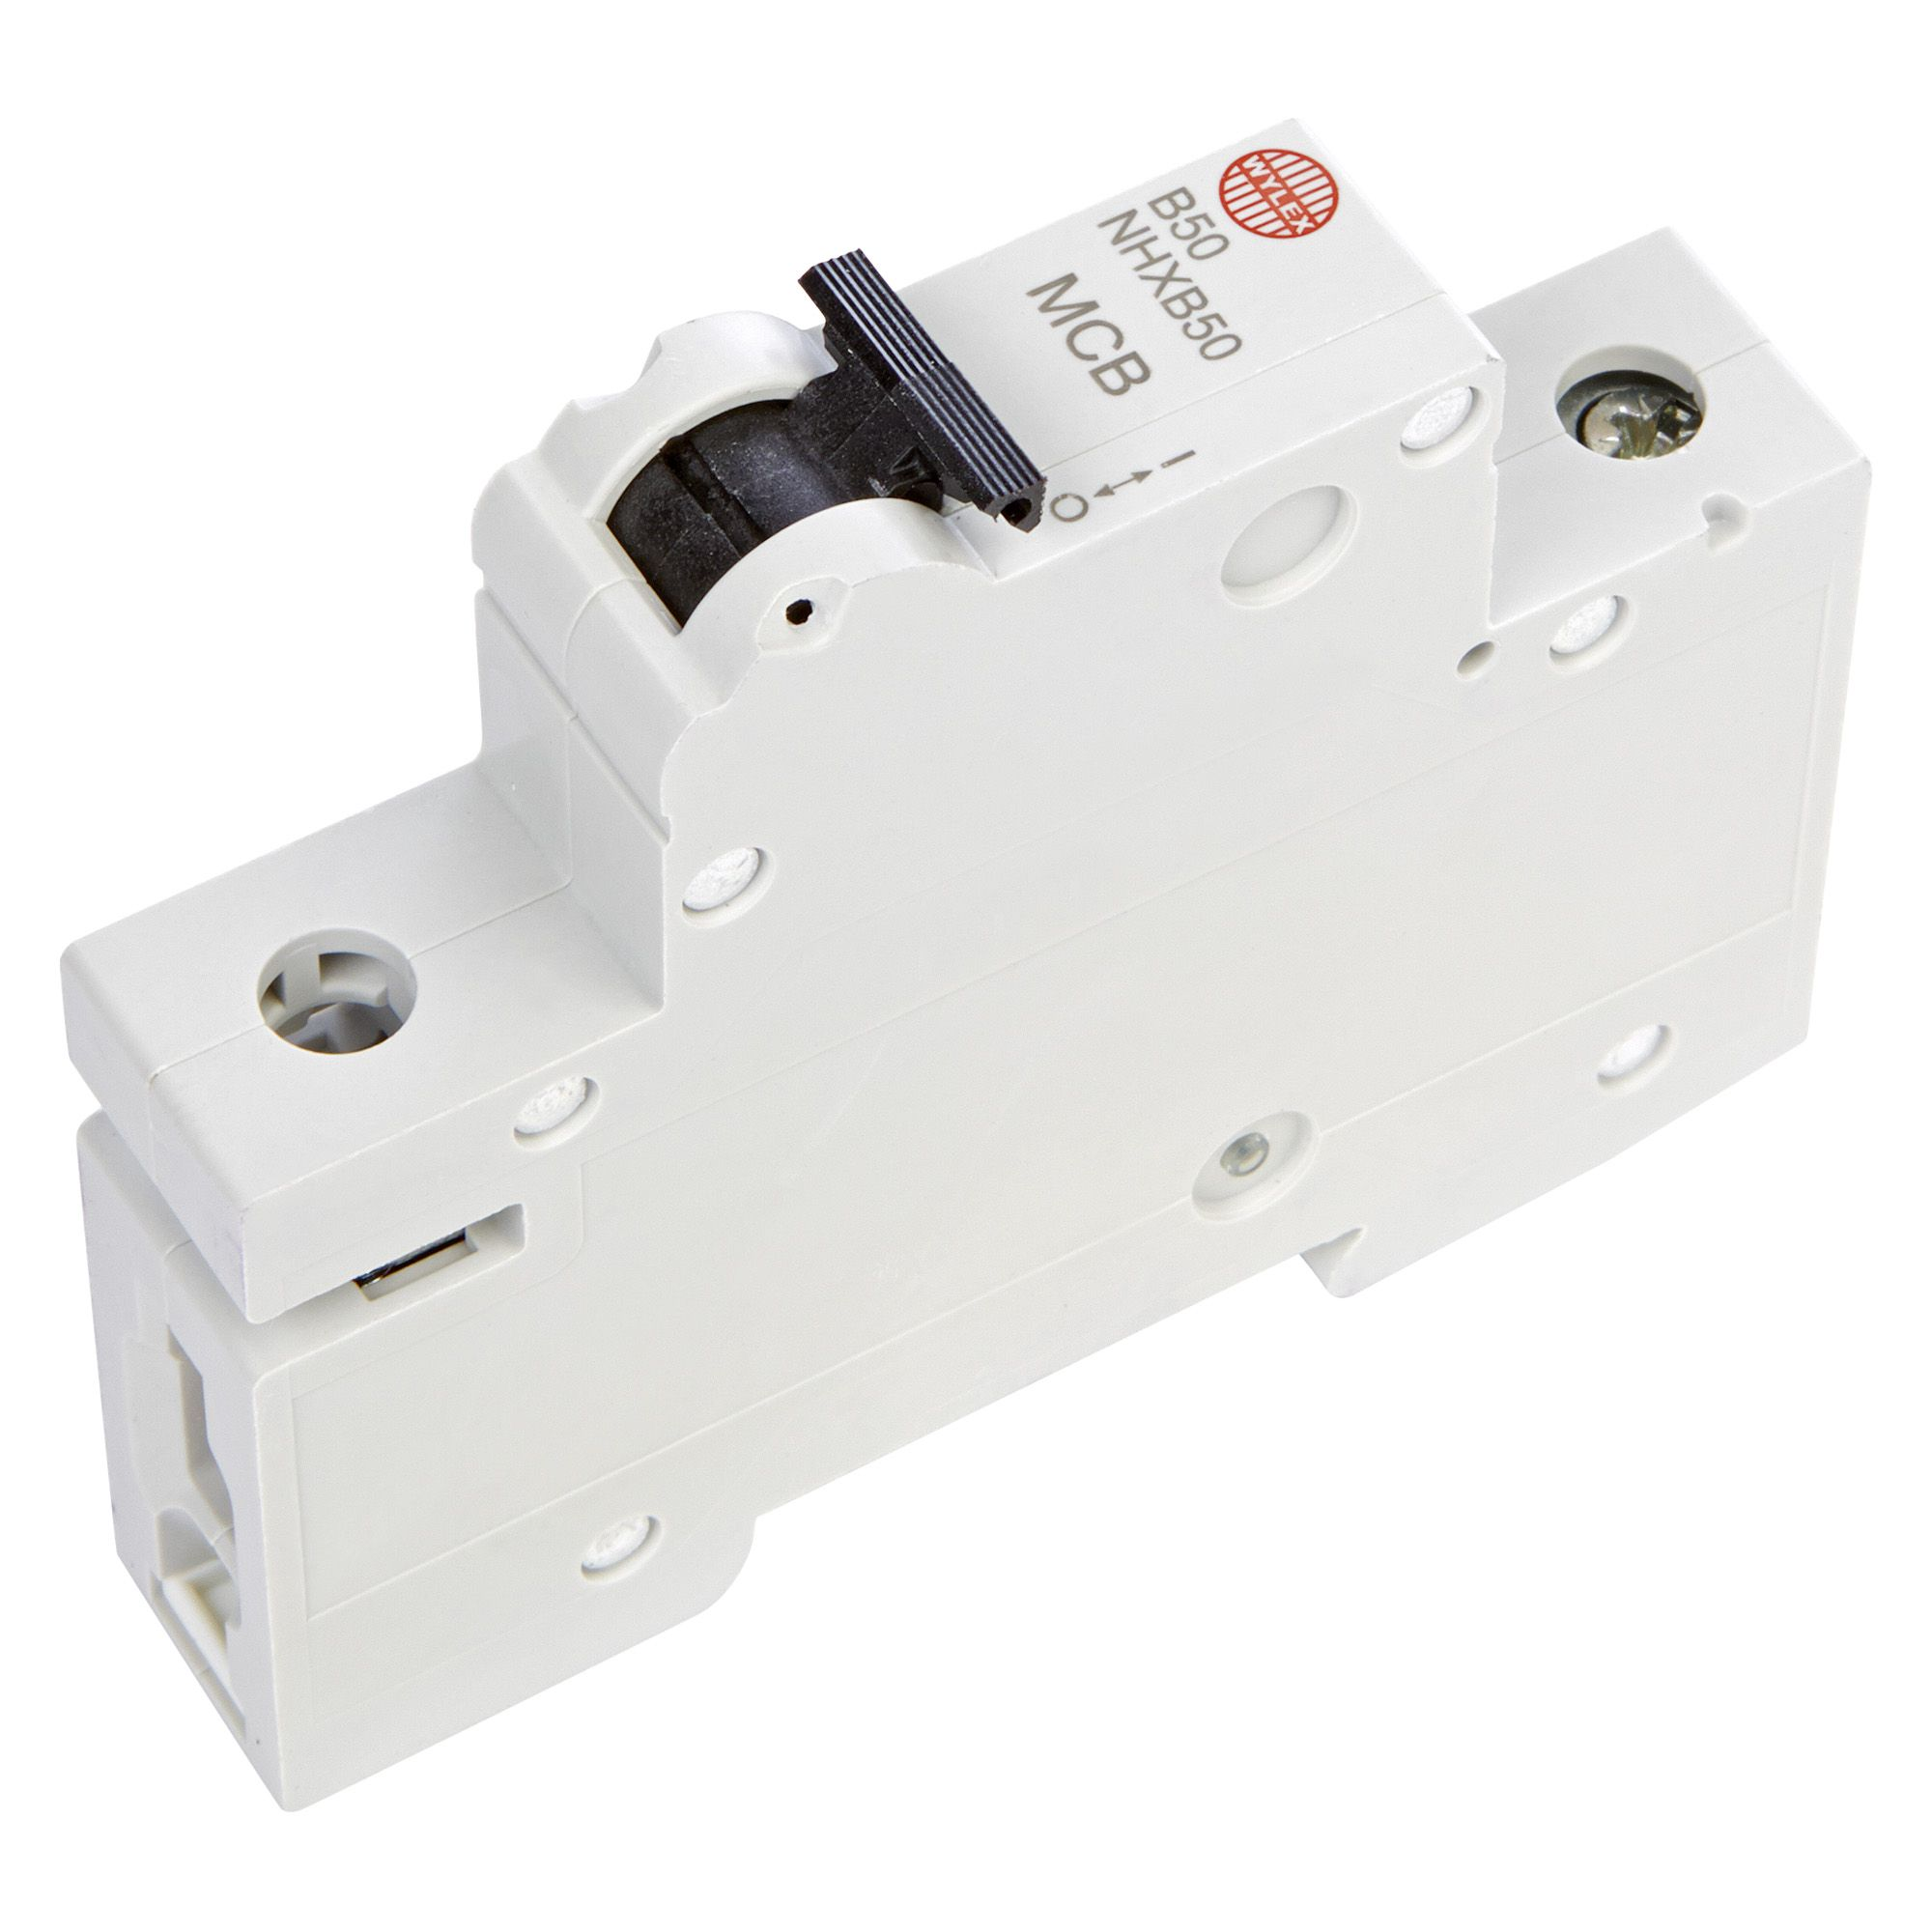 Wylex 604 Fuse Box Wiring Library Junction Bq 50a Miniature Circuit Breaker Departments Diy At 12 Volt Auto Reset How